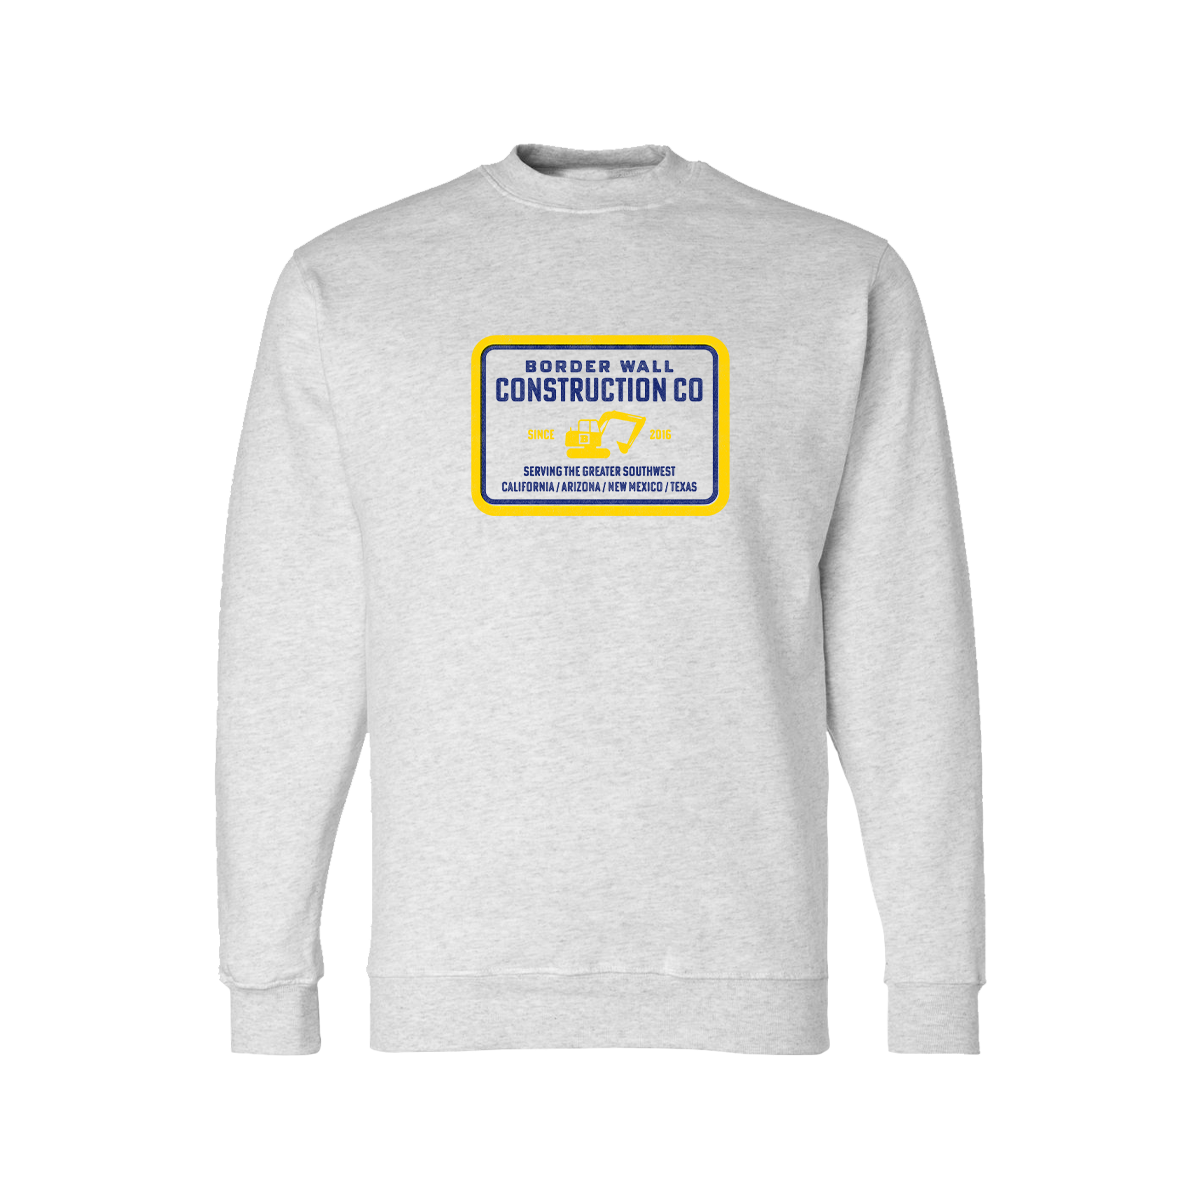 Border Wall Construction Company Sweatshirt